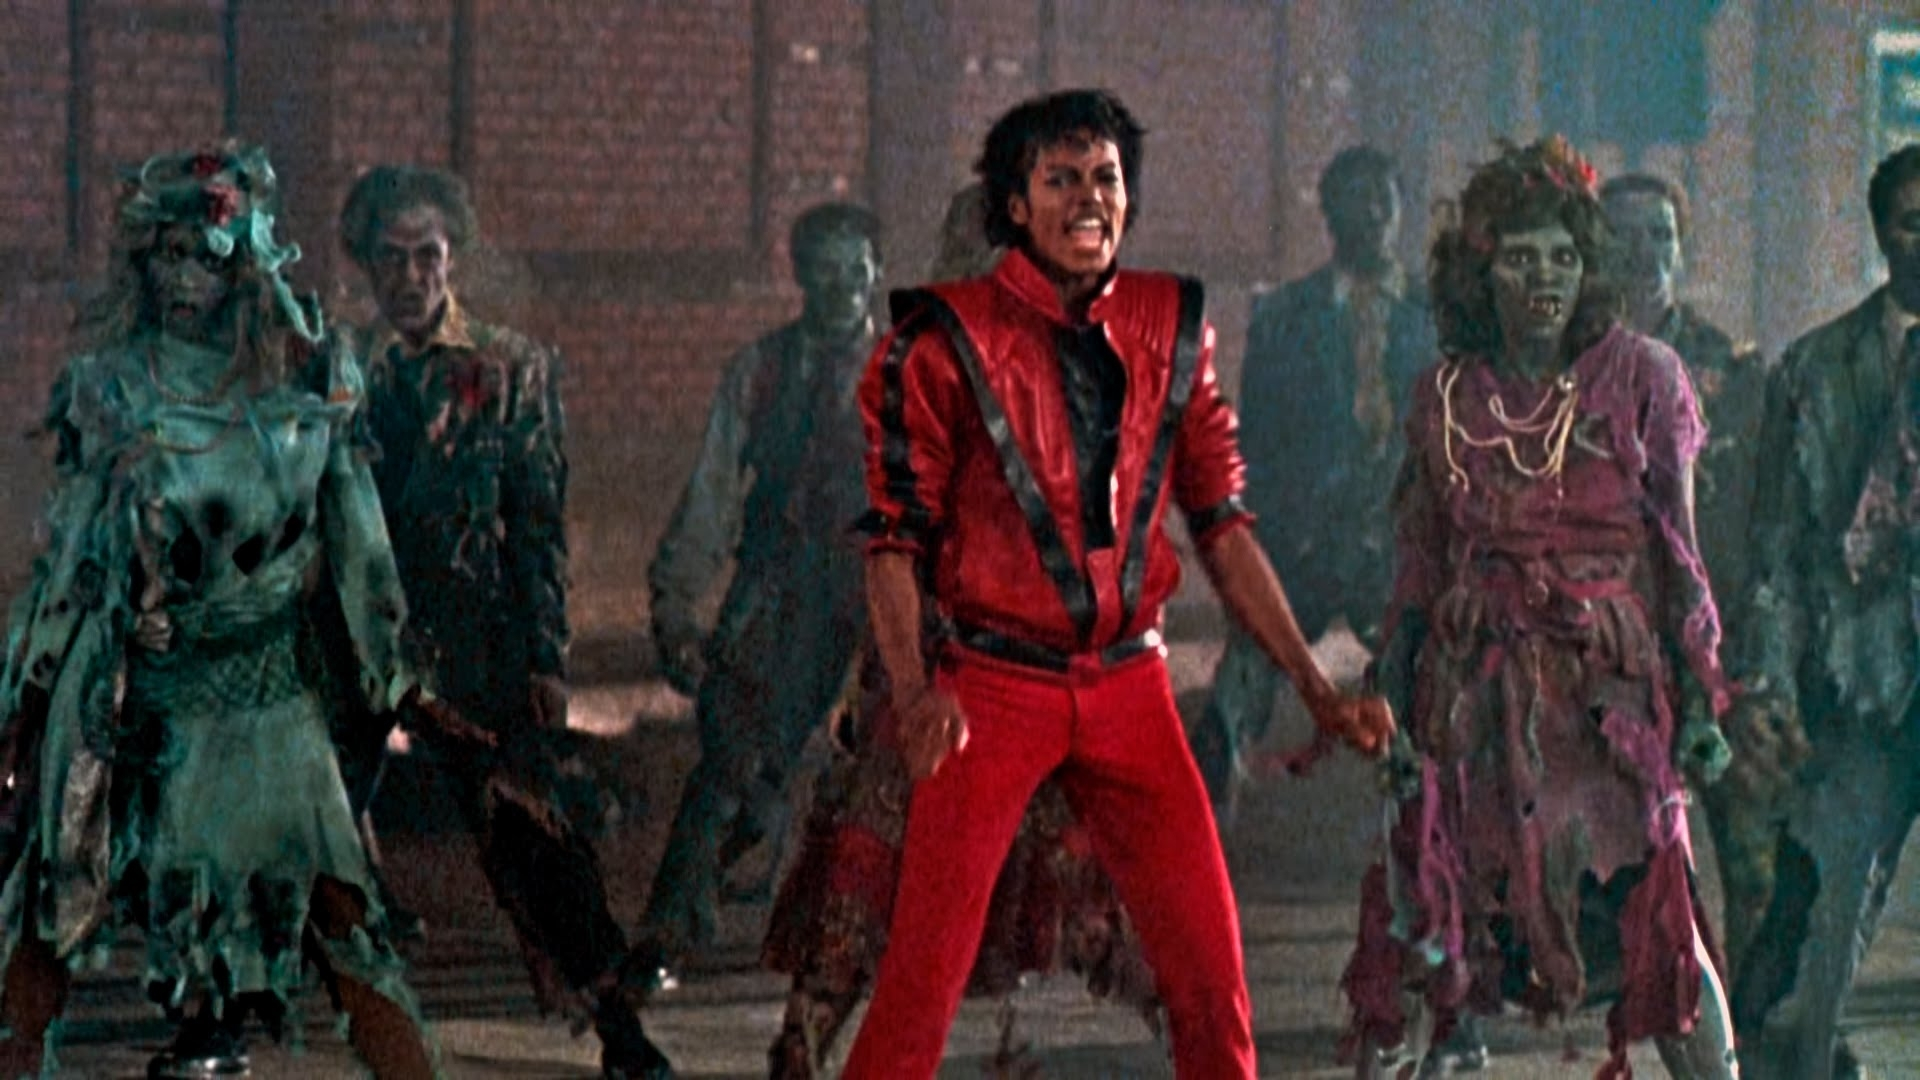 10 Best Michael Jackson Thriller Images FULL HD 1920×1080 For PC Background